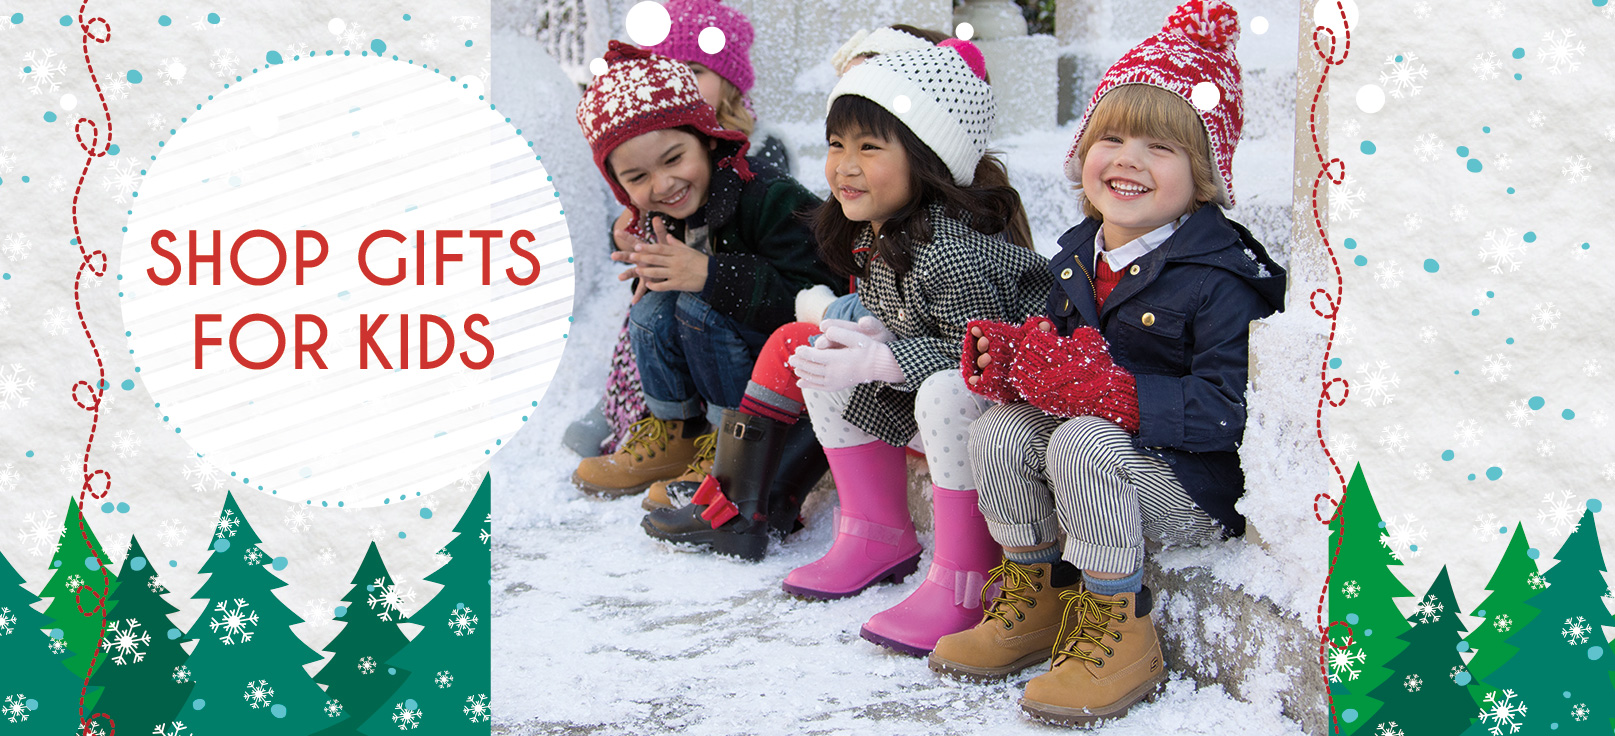 Shop for Holiday Gifts for kids, boys and girls including boots, Star Wars shoes, Twinkle Toes, Twinkle Wishes and Game Kicks